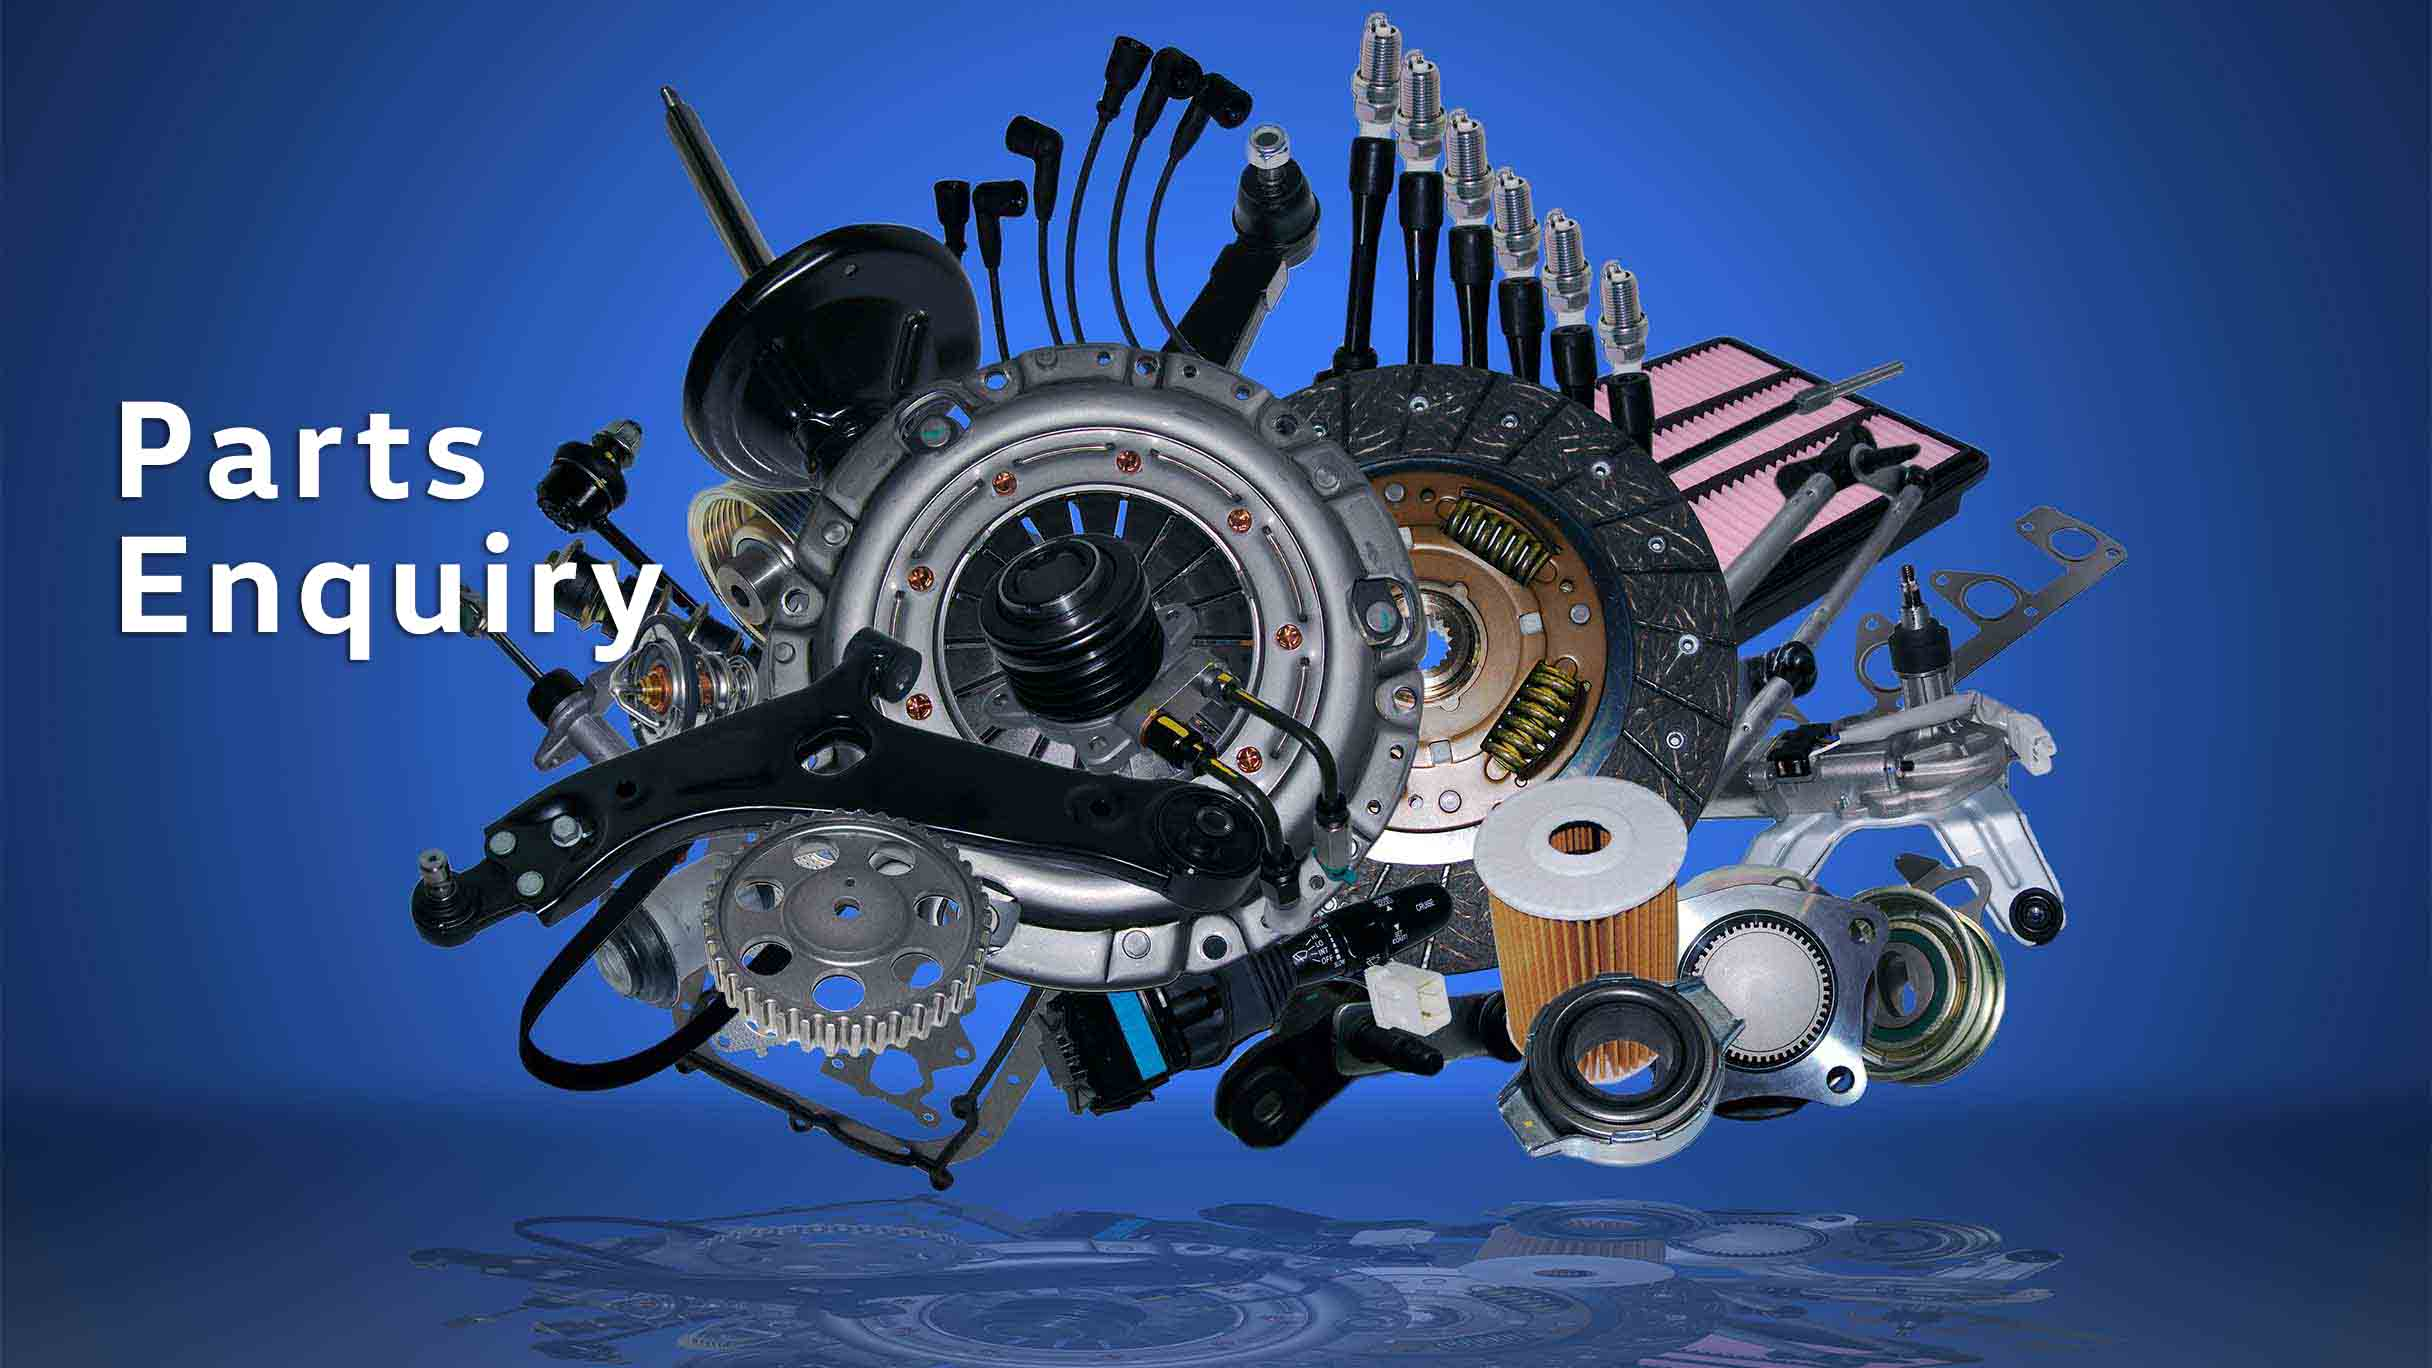 Buy VW parts at Barons N1 Commercial